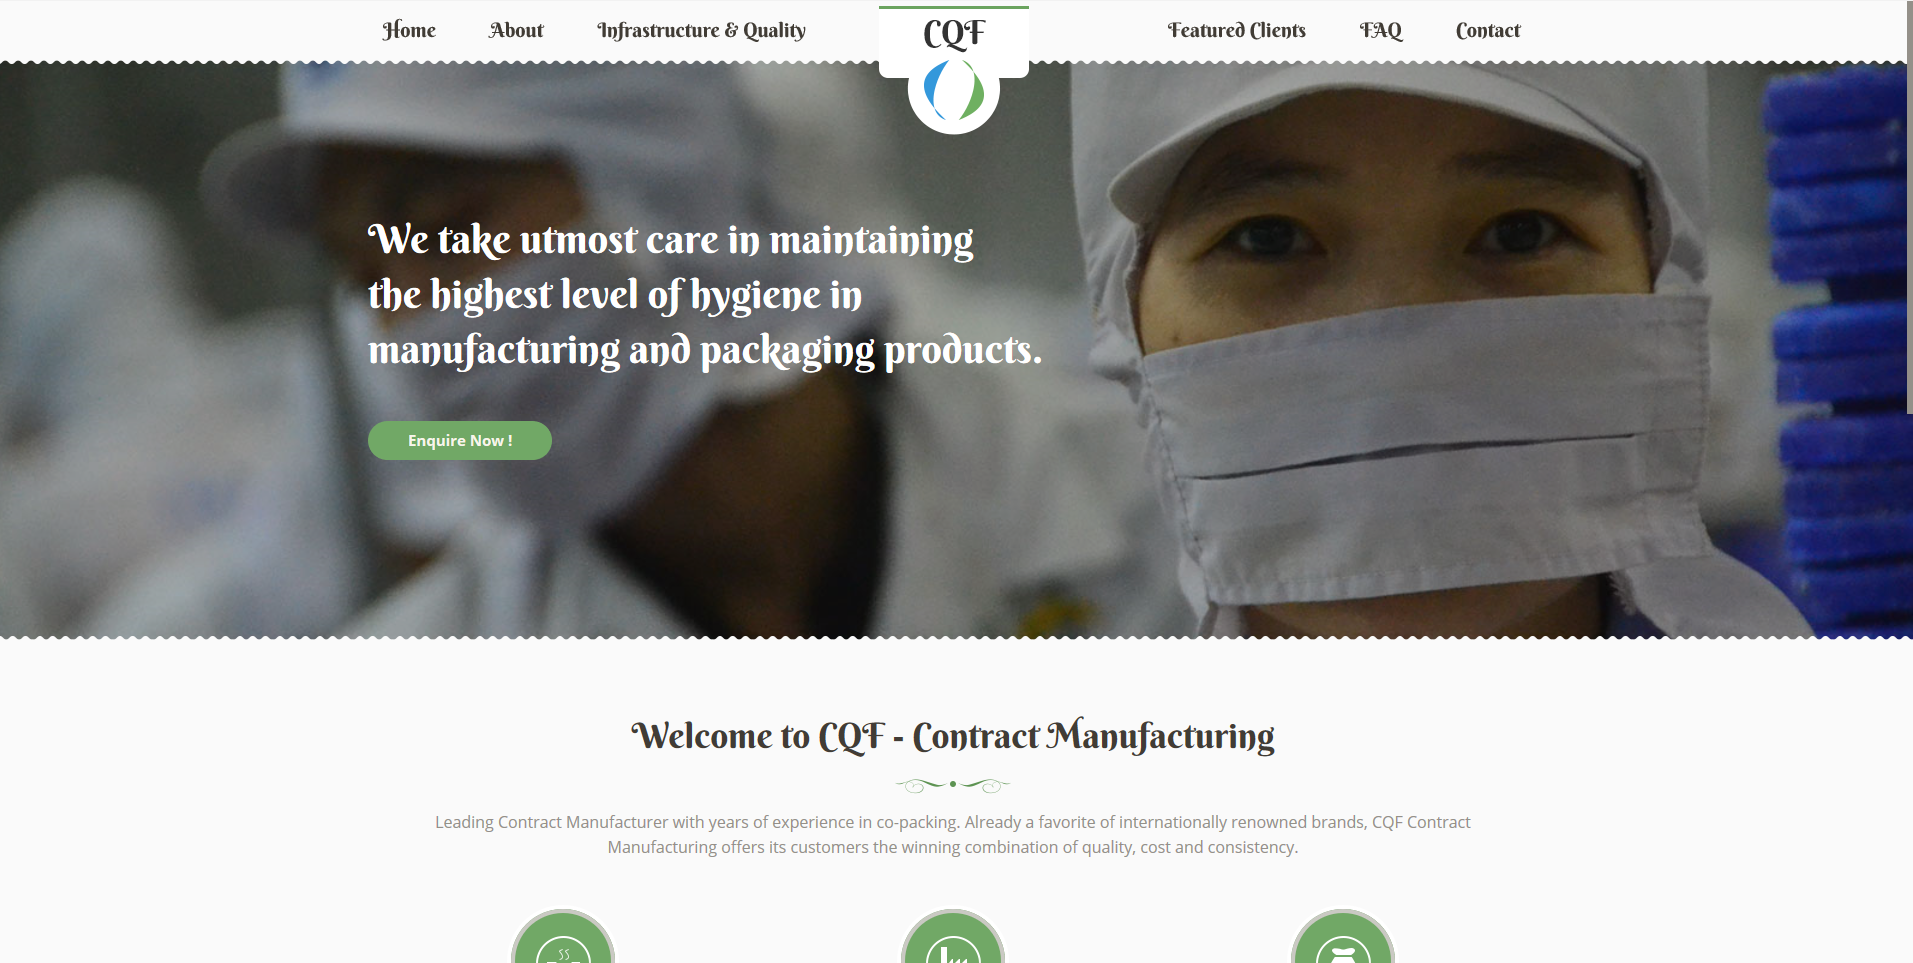 CQF - Contract Manufacturing - Decoded the website structure & created the content.#ContentWriting #ContentDesign